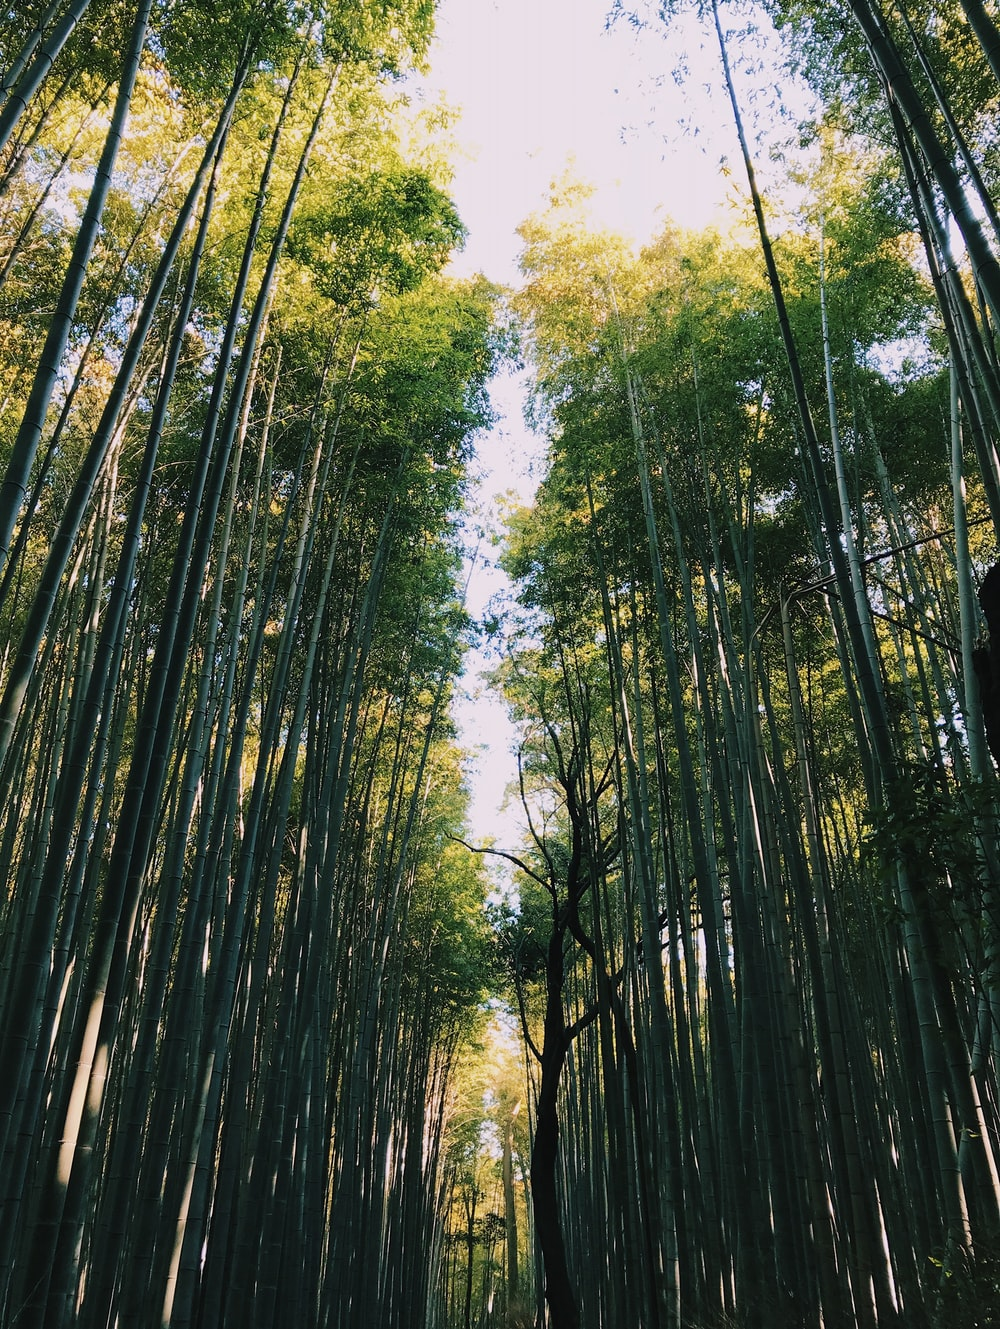 low angle photography of bamboo